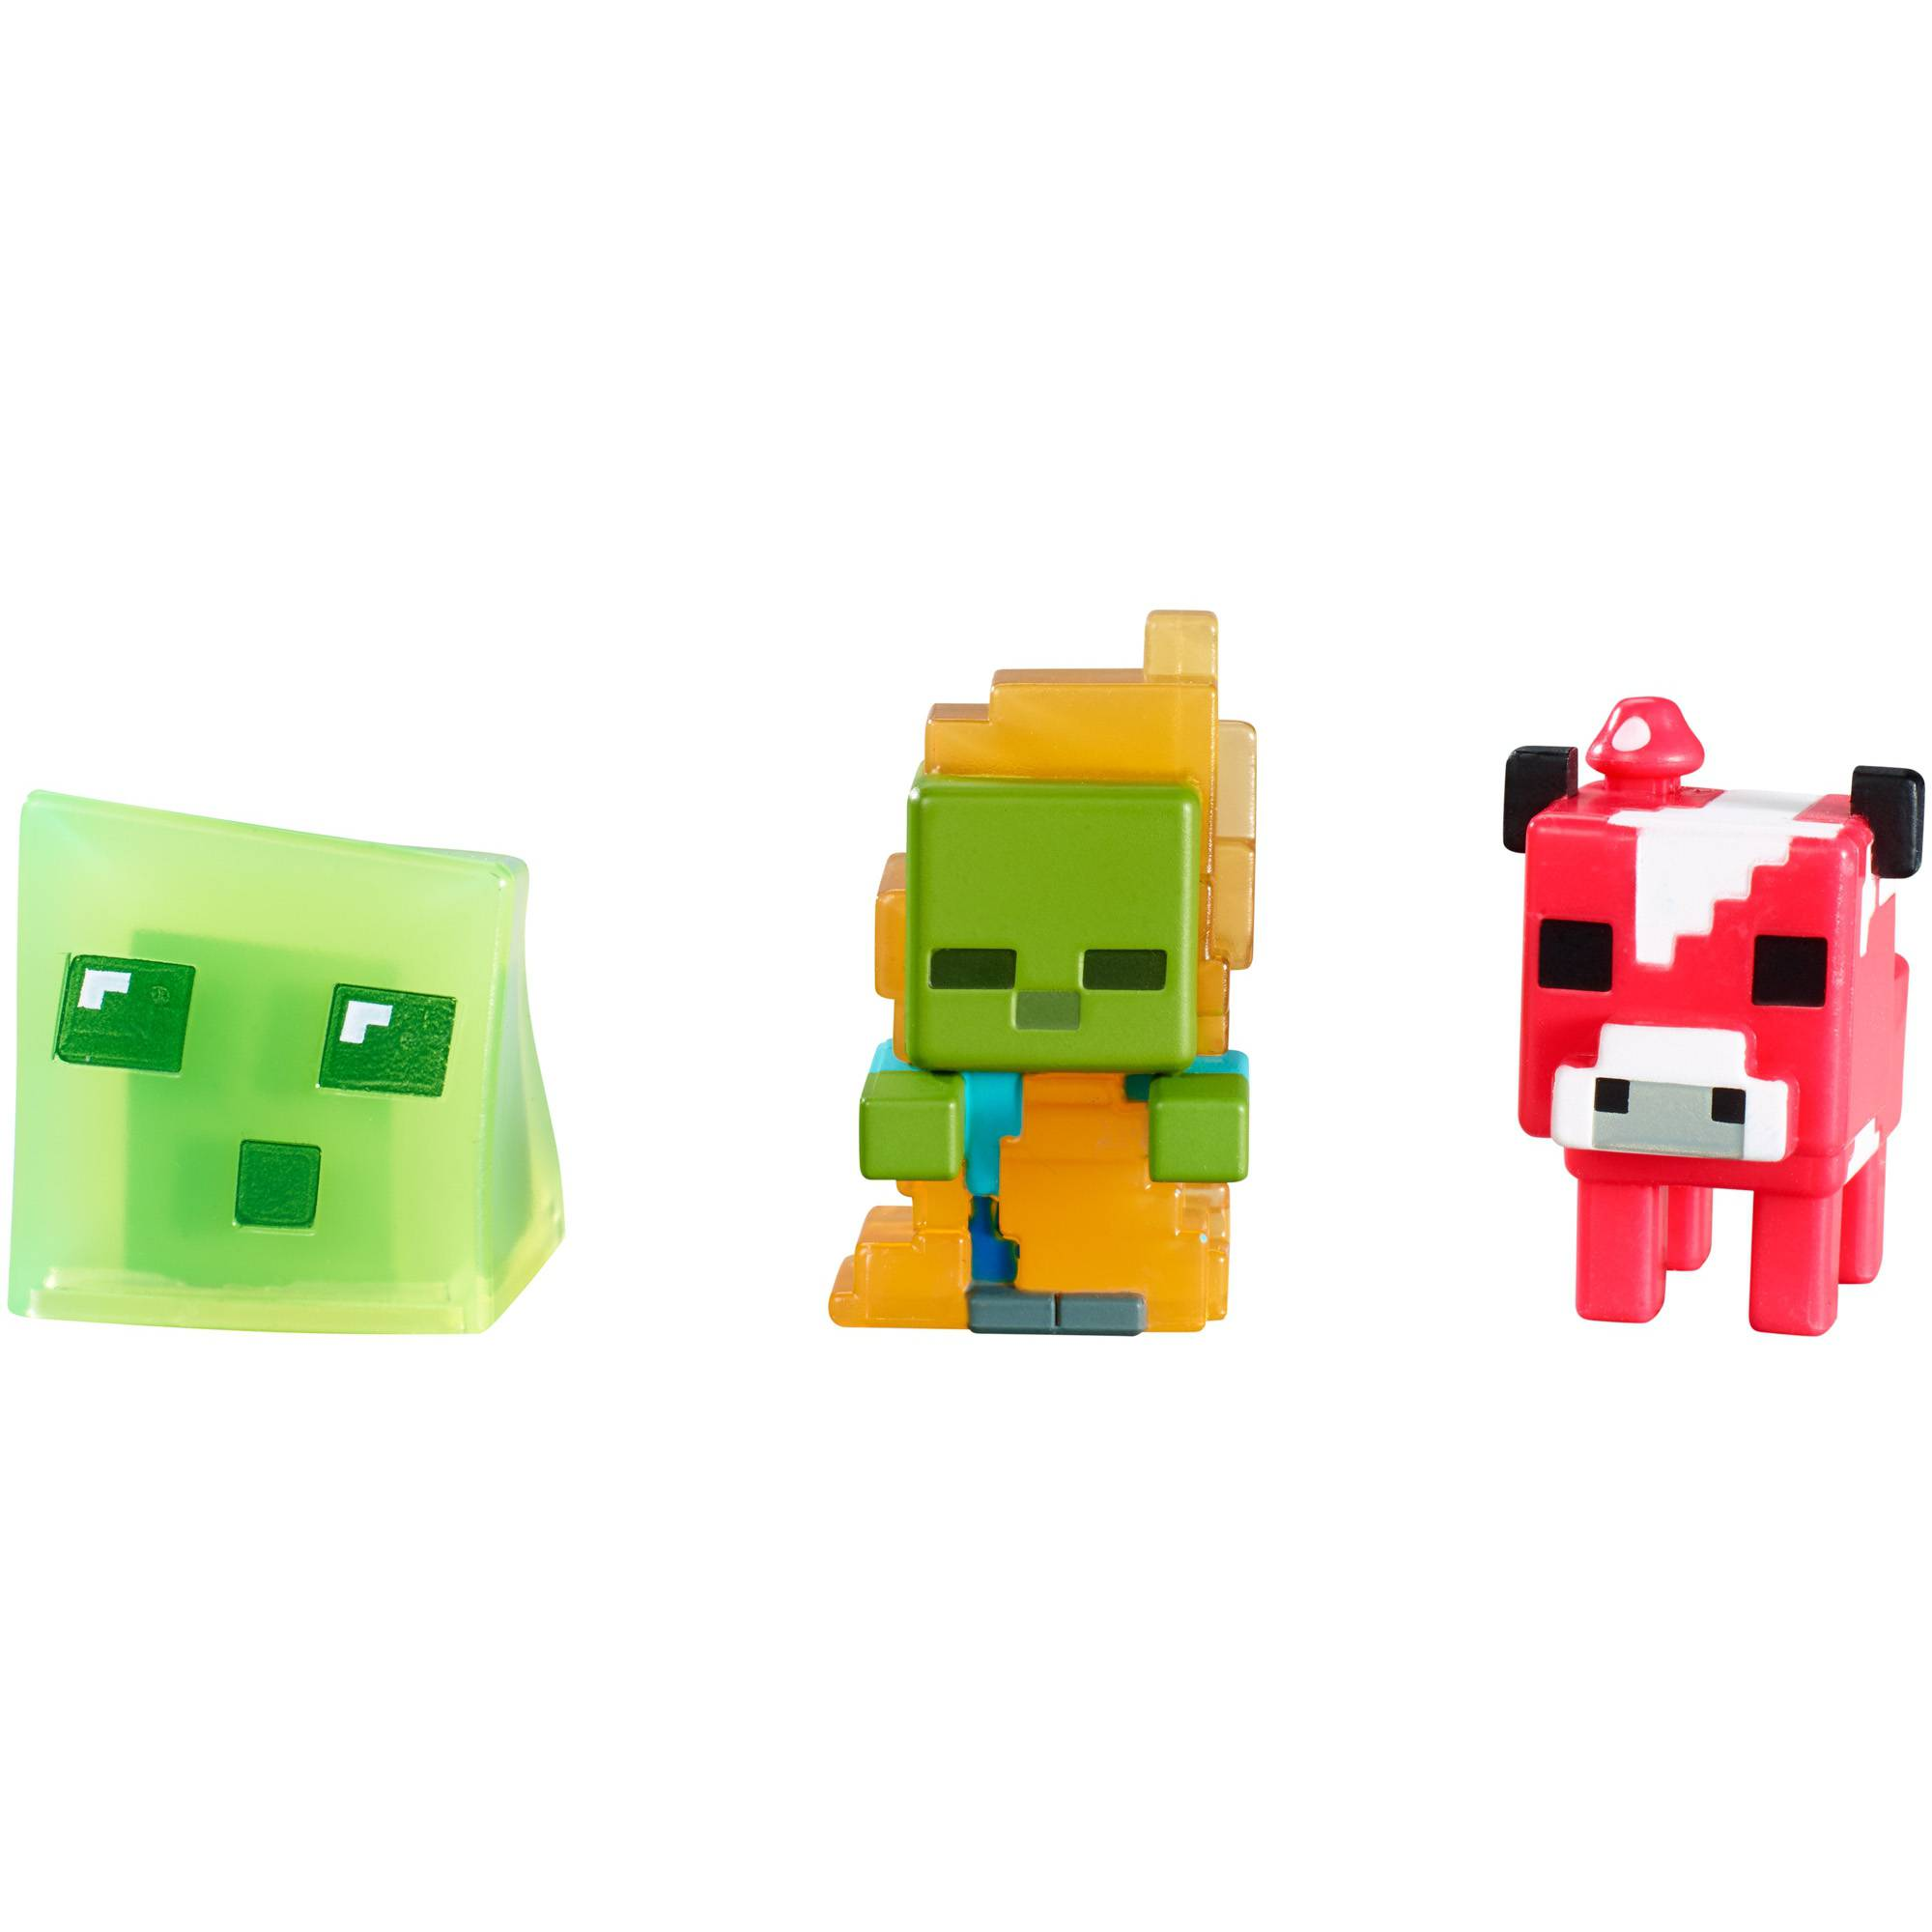 Minecraft 3-Pack Mooshroom, Zombie In Flames and Slime Cube by Mattel